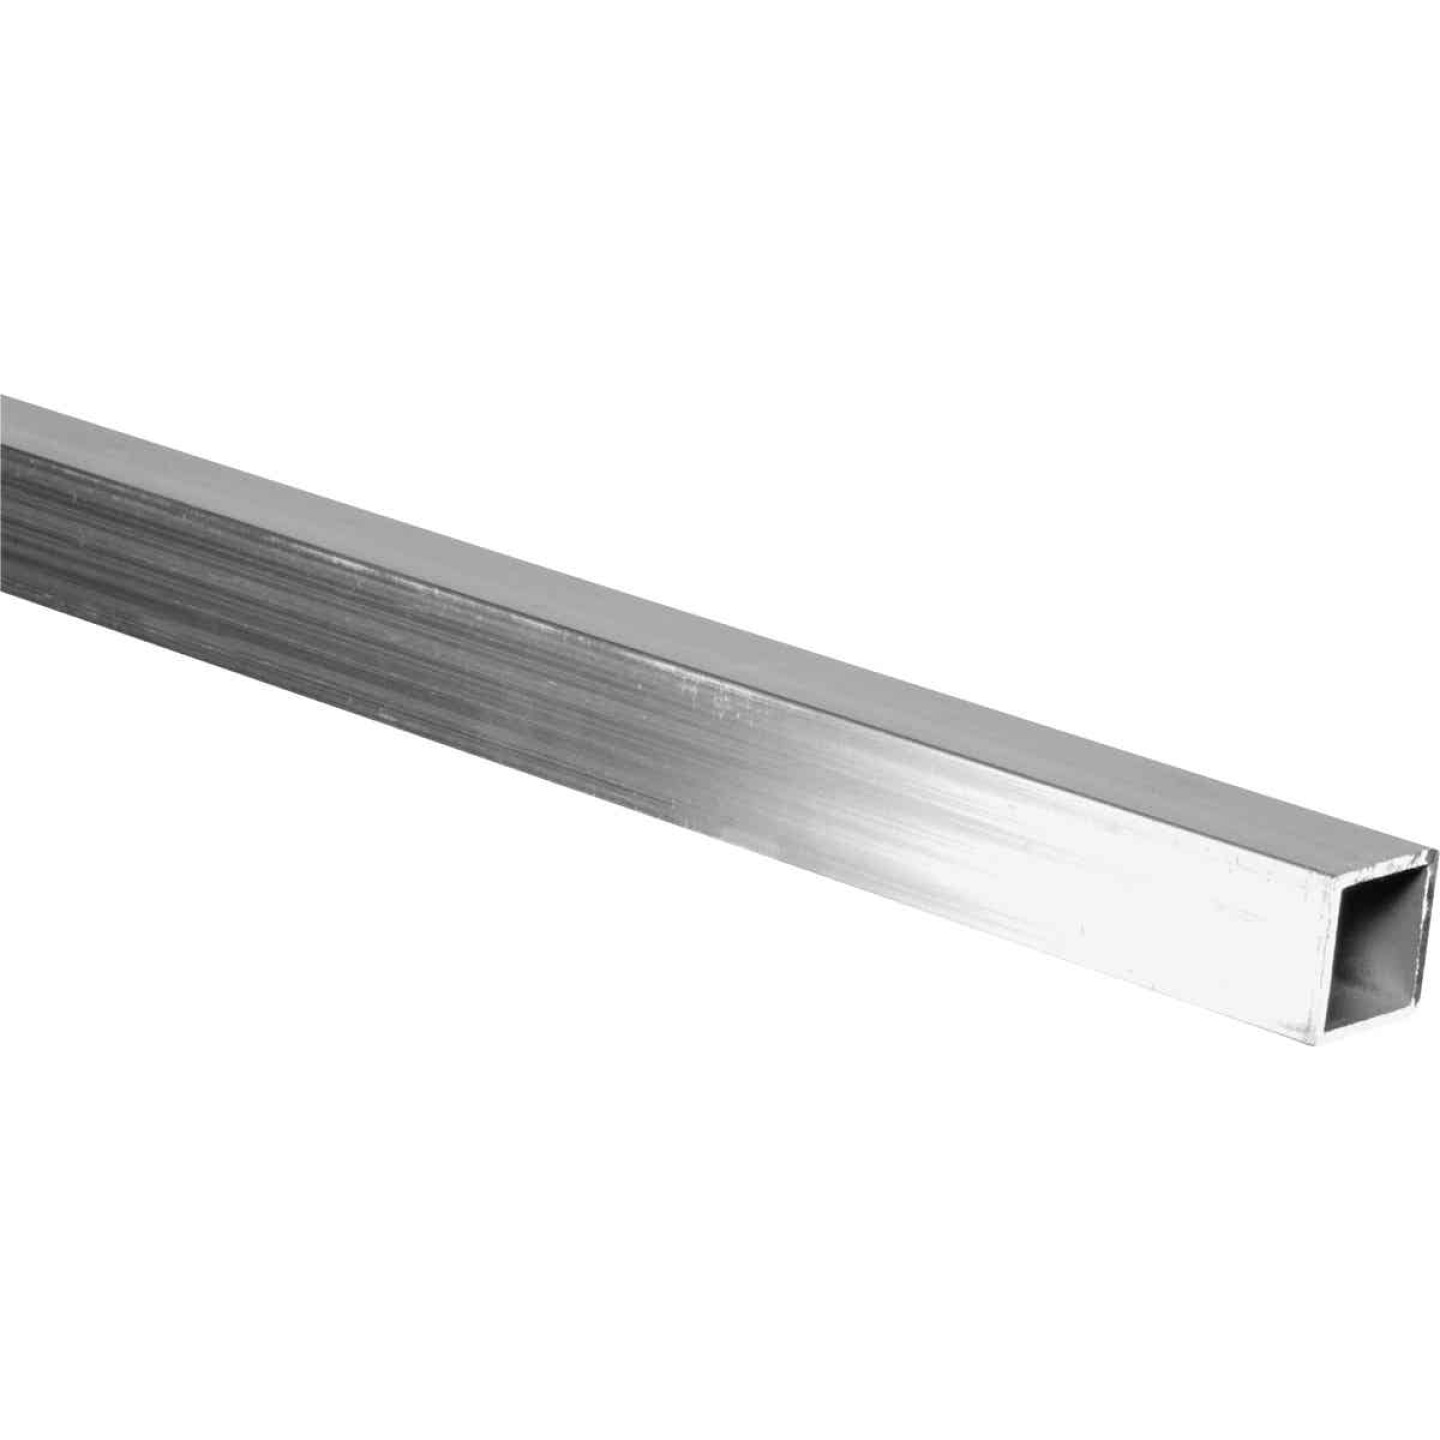 HILLMAN Steelworks 1 In. x 6 Ft. x 1/16 In. Aluminum Square Tube Image 1